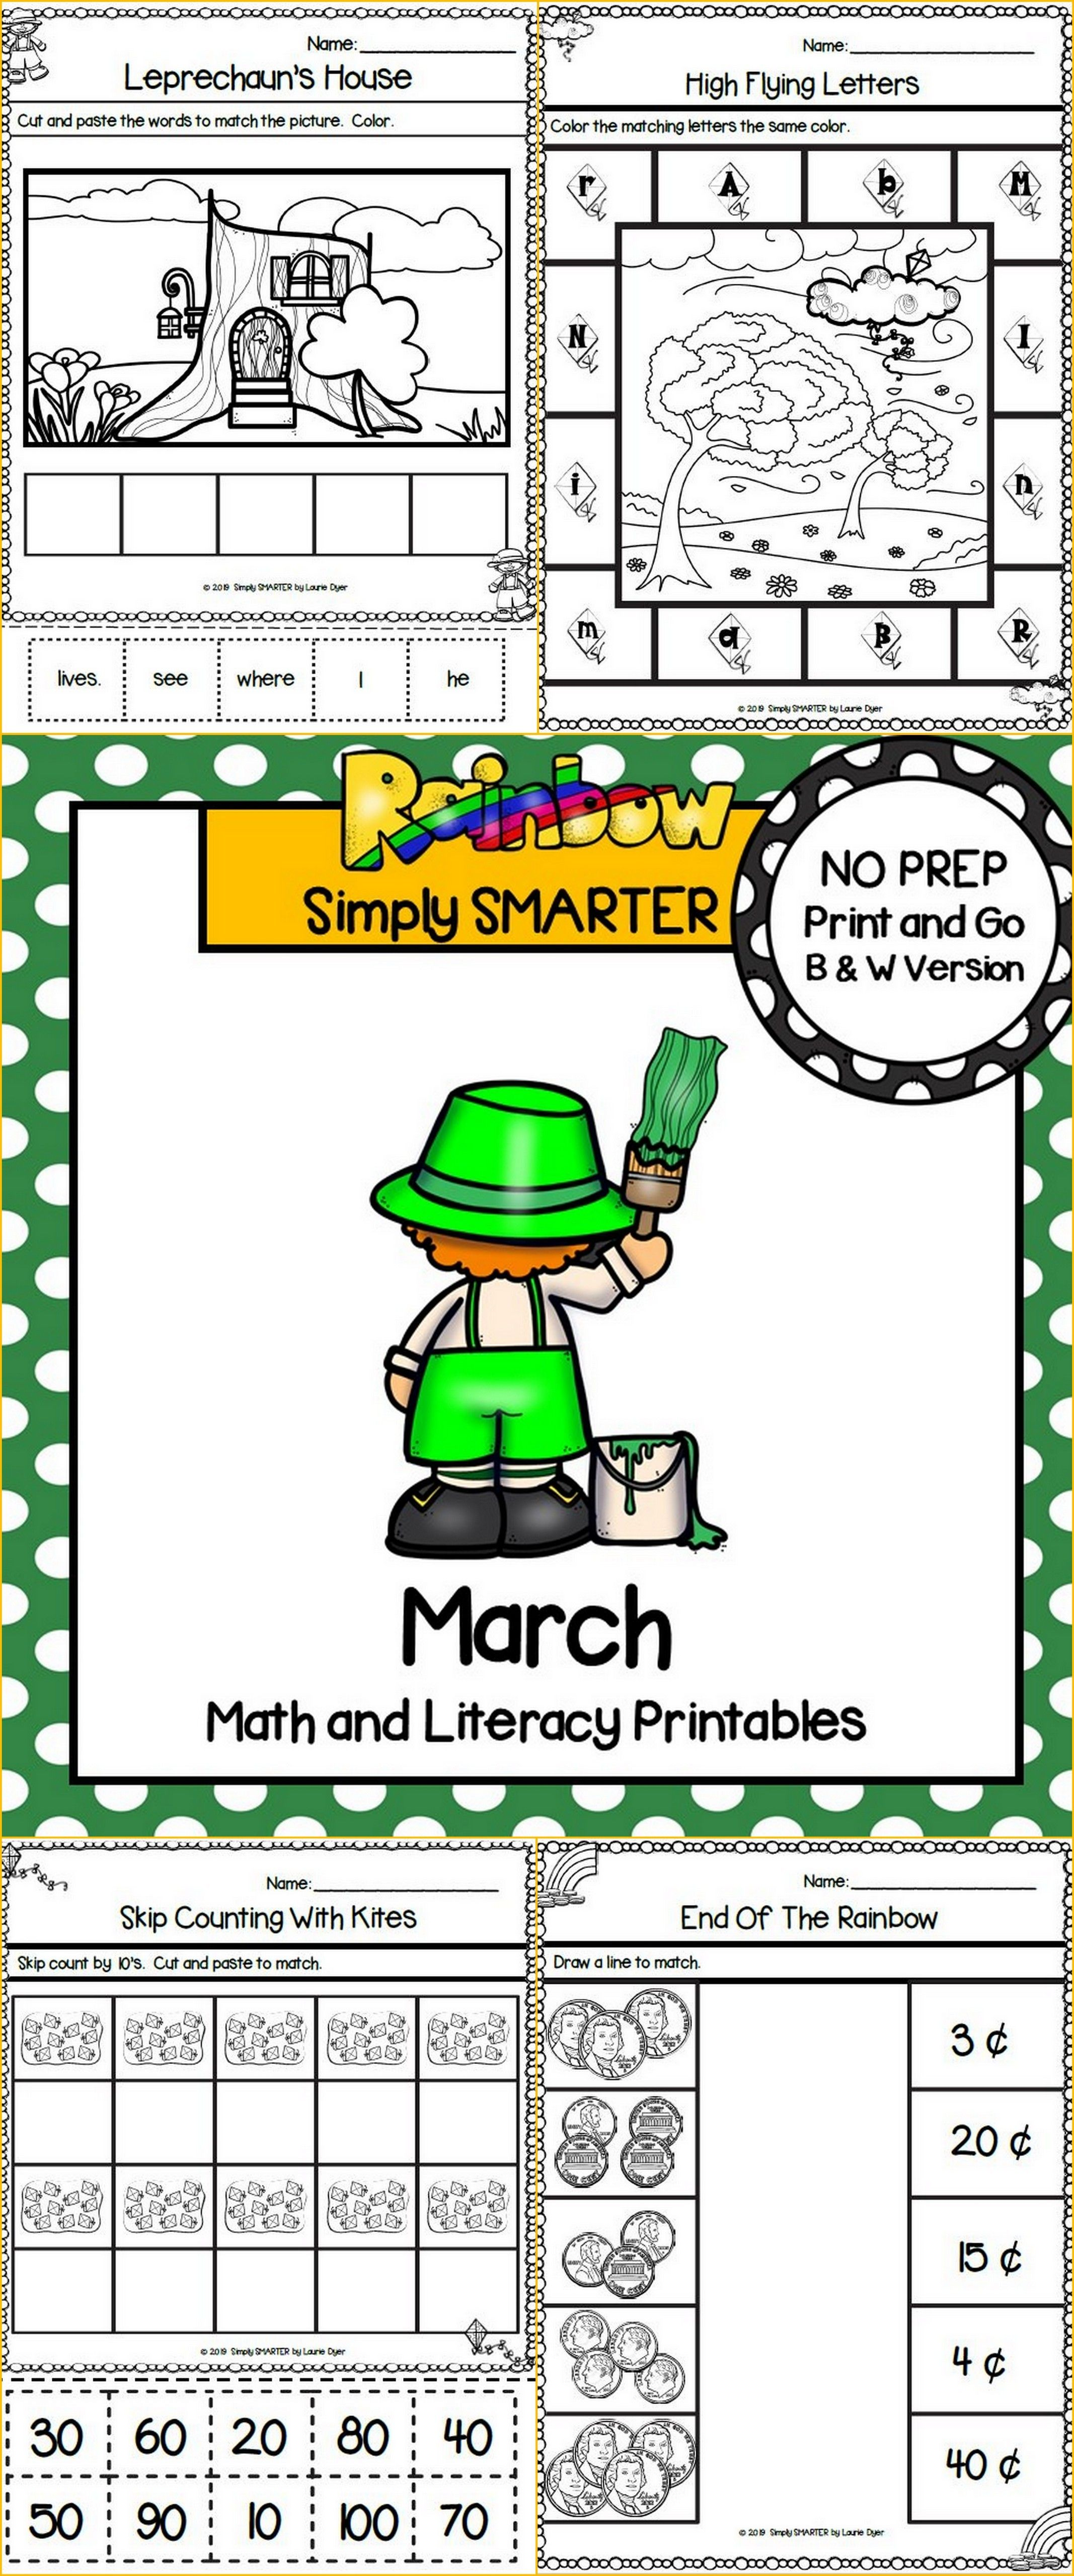 March Math And Literacy Printables And Activities For